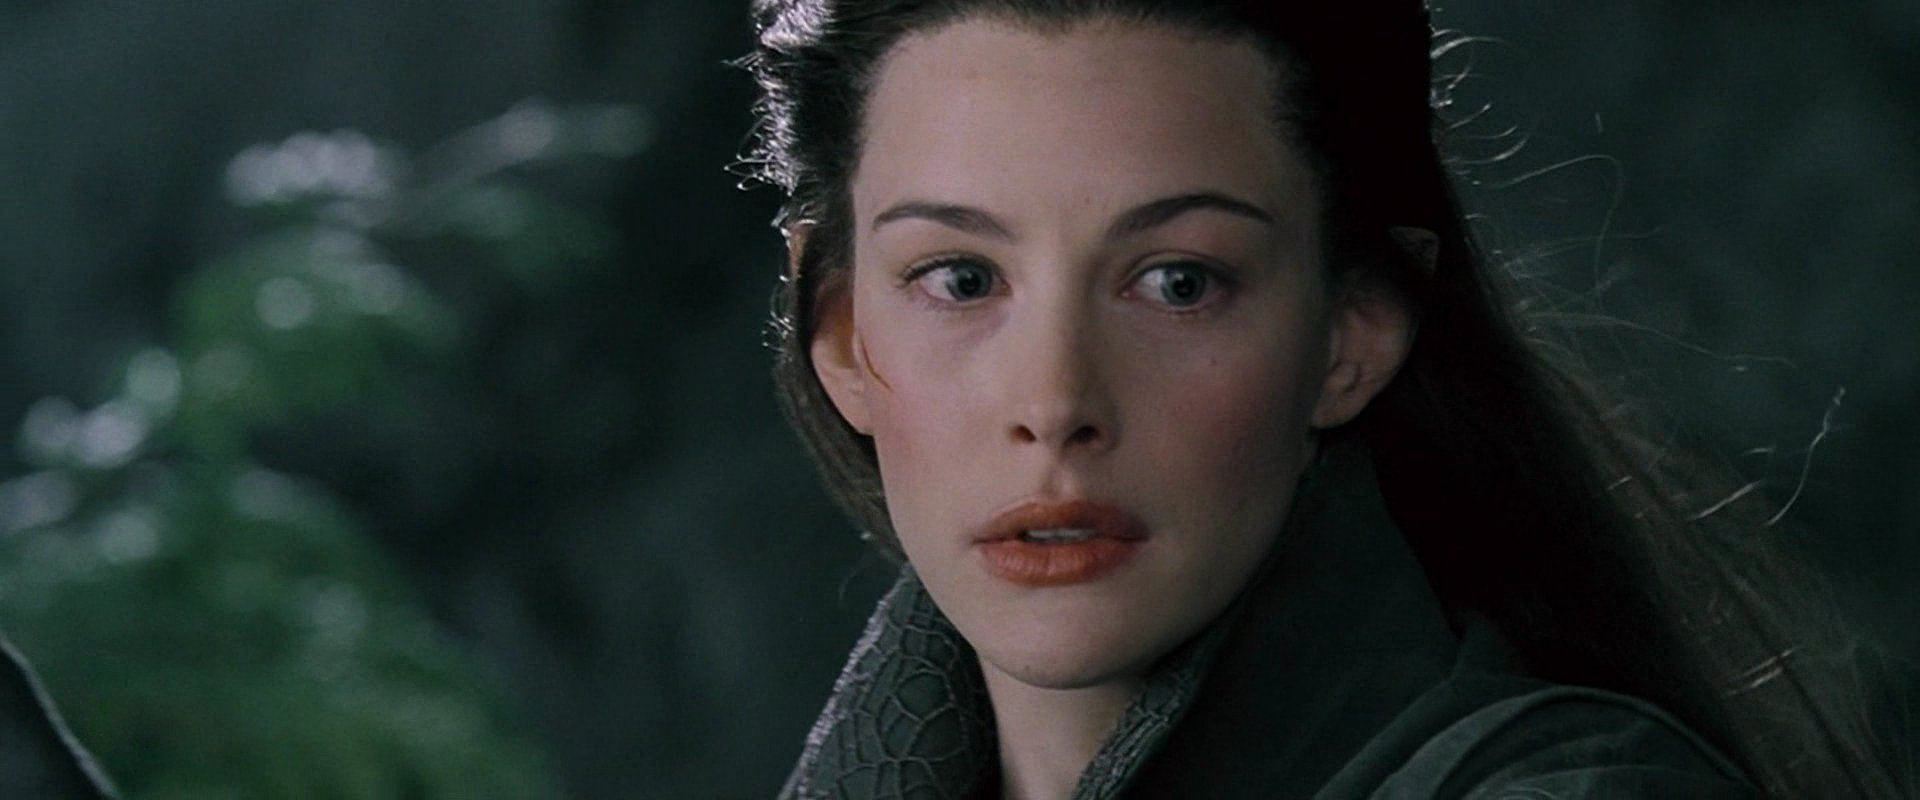 ""\""""If you want him, come and claim him!""""  Happy 40th Birthday to Liv Tyler!""1920|800|?|en|2|0e8c462aa8c1290fab4ad21bc63abfa3|False|UNLIKELY|0.32930585741996765